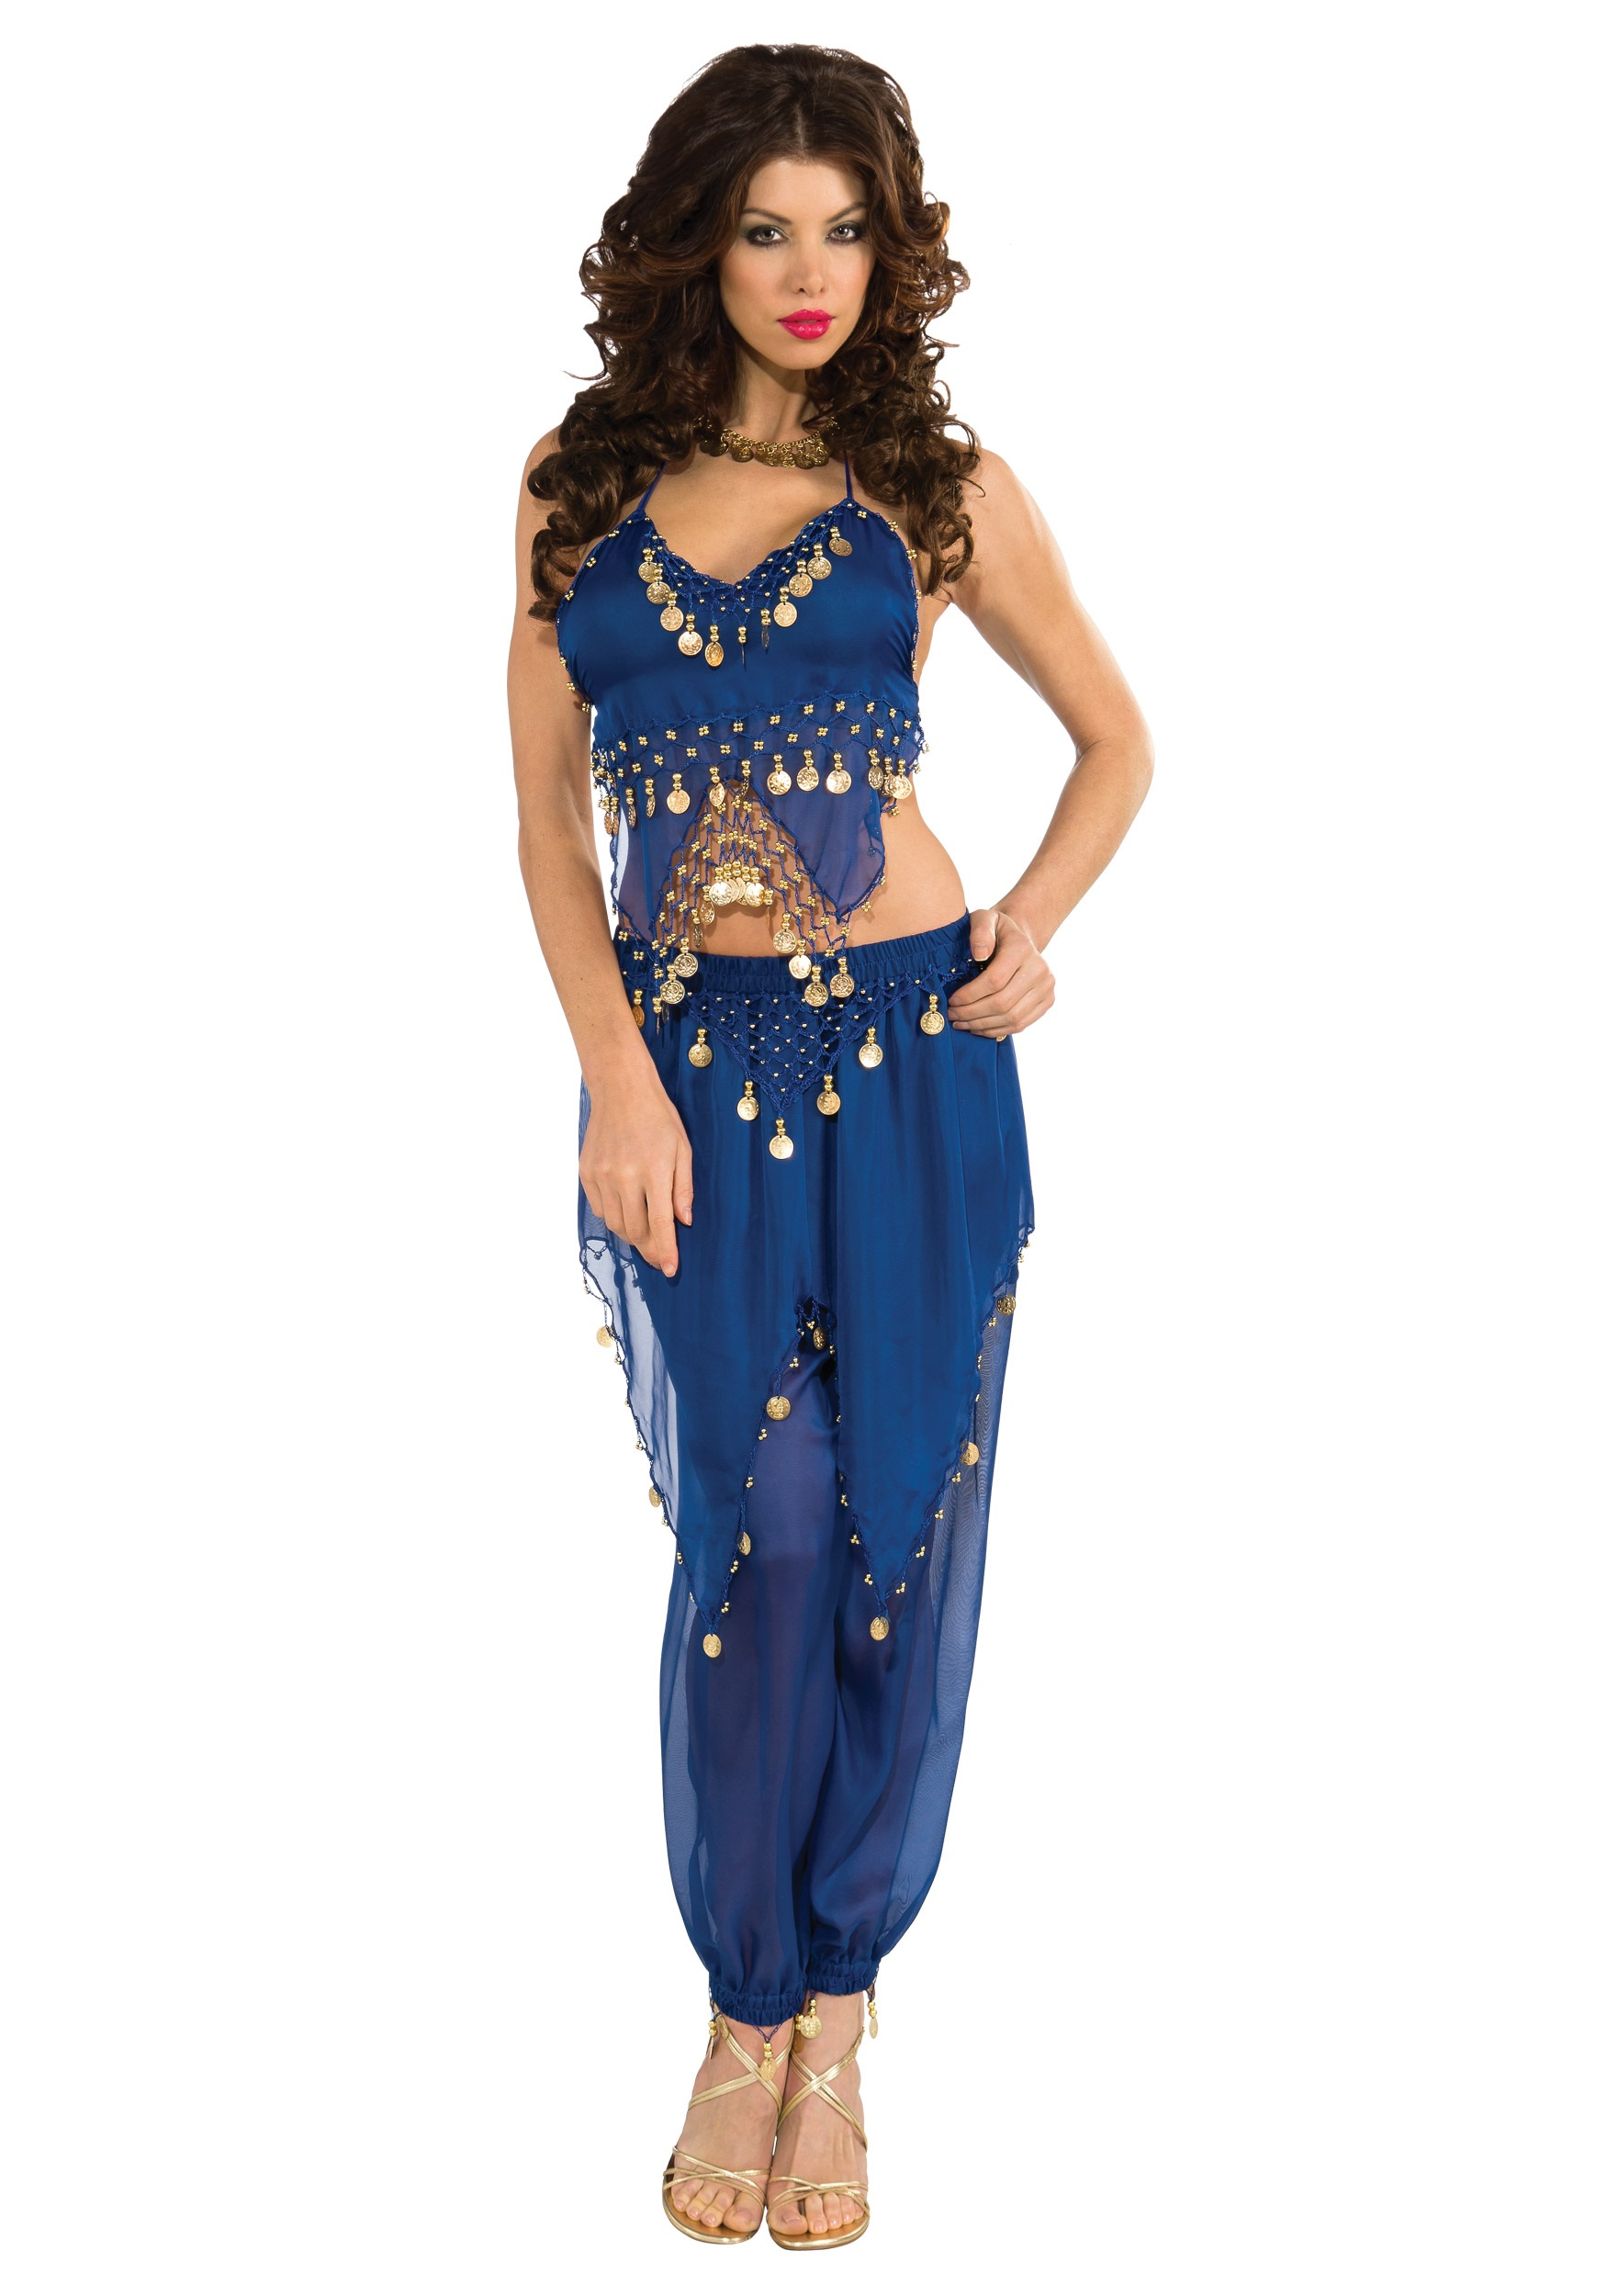 Back toAdult Costumes, Belly Dancer / Gypsy Costumes, International Costumes,  Sexy Costumes, Theme Costumes, Women's Costumes